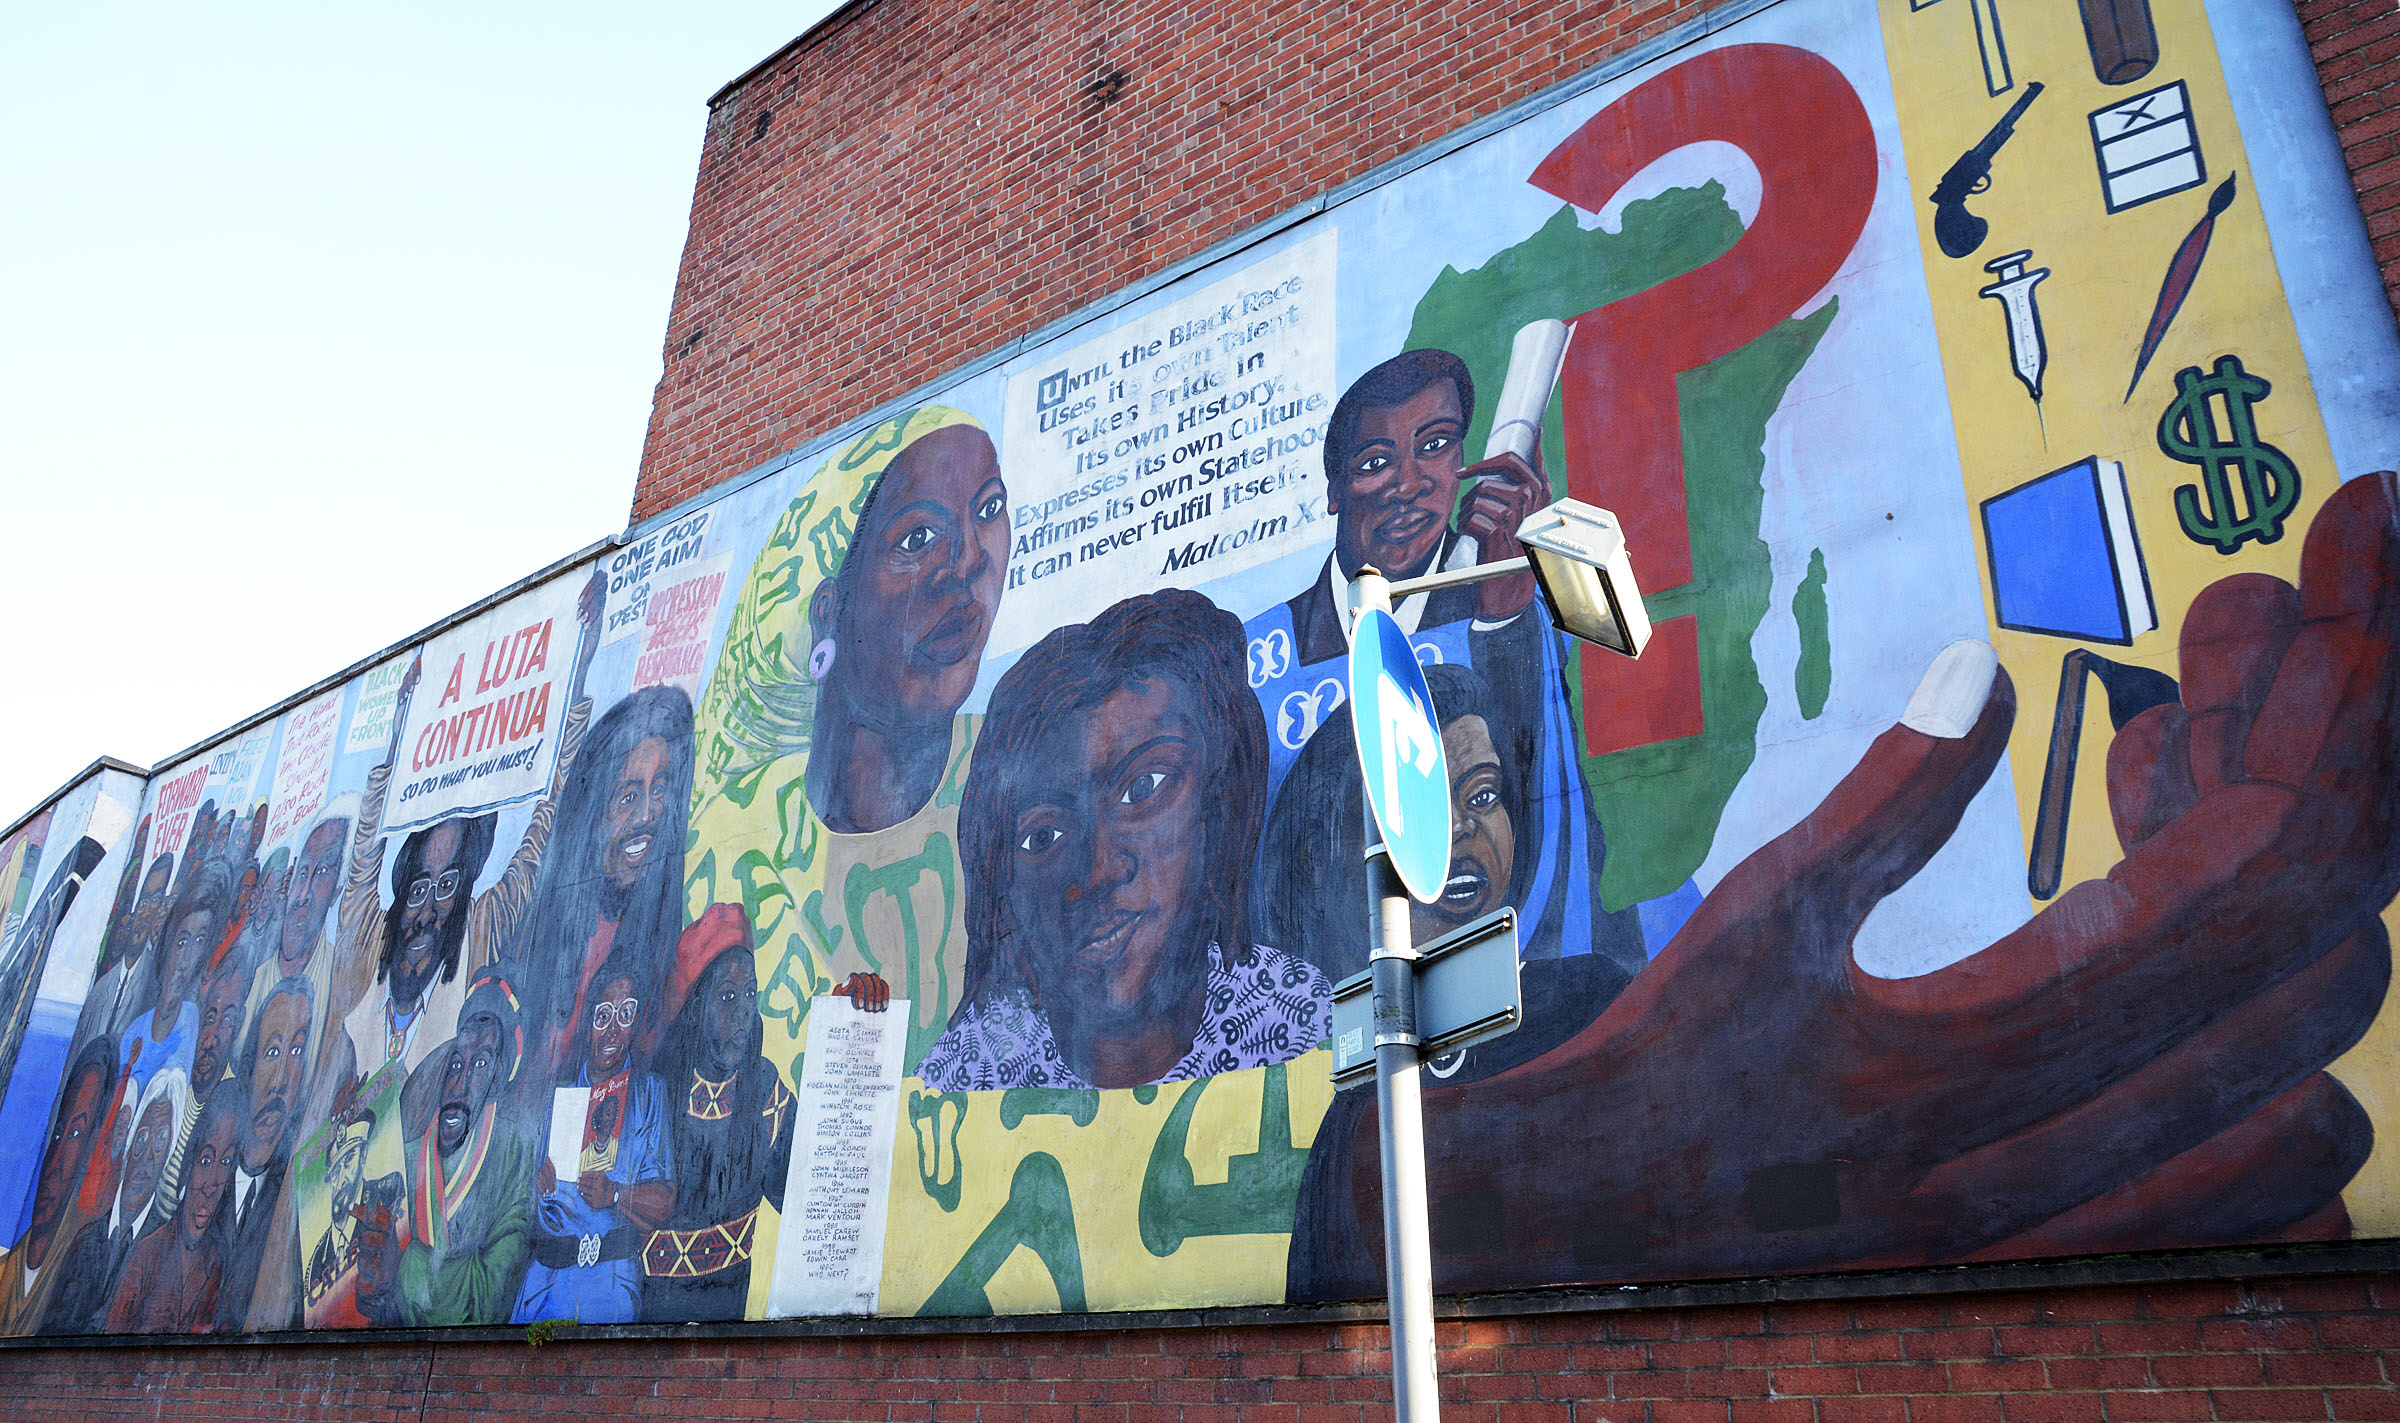 Black History mural undergoes restoration following safety concerns